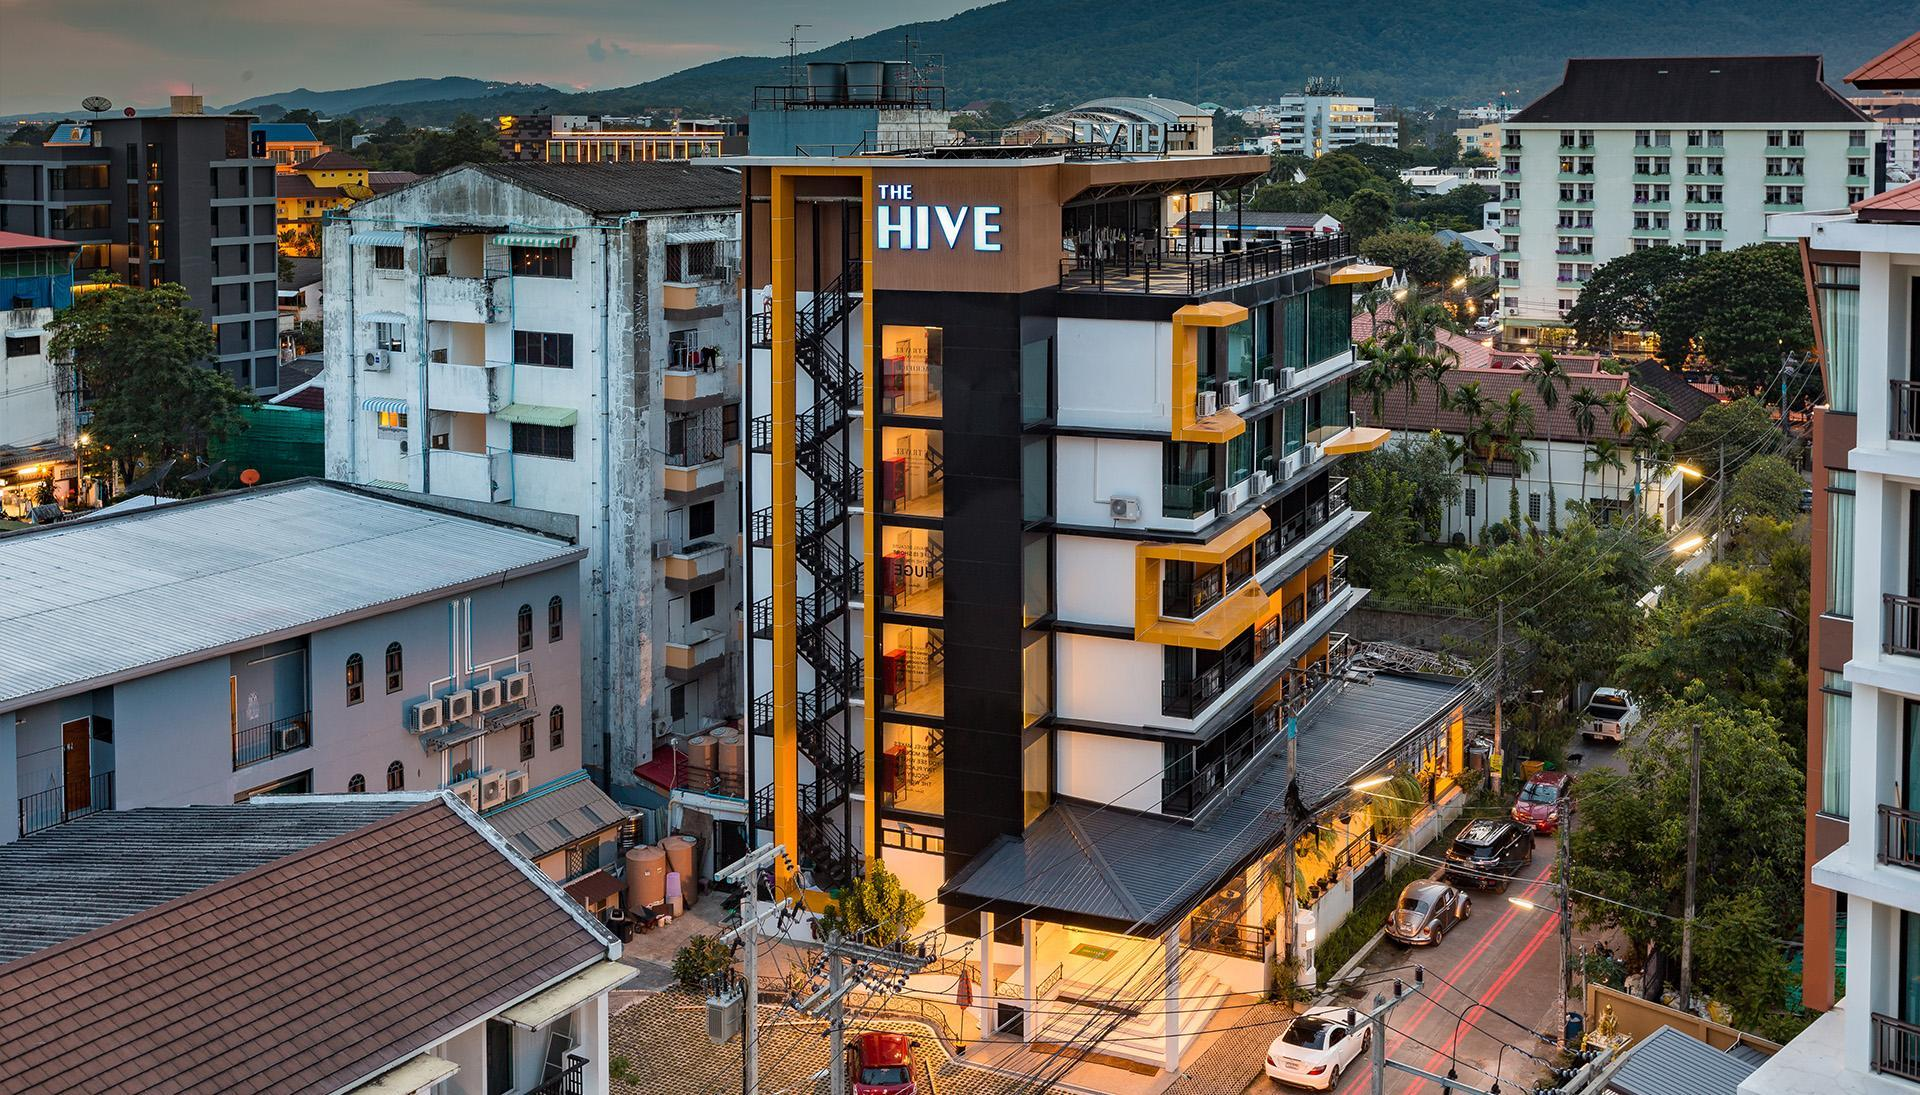 The Hive Chiang Mai